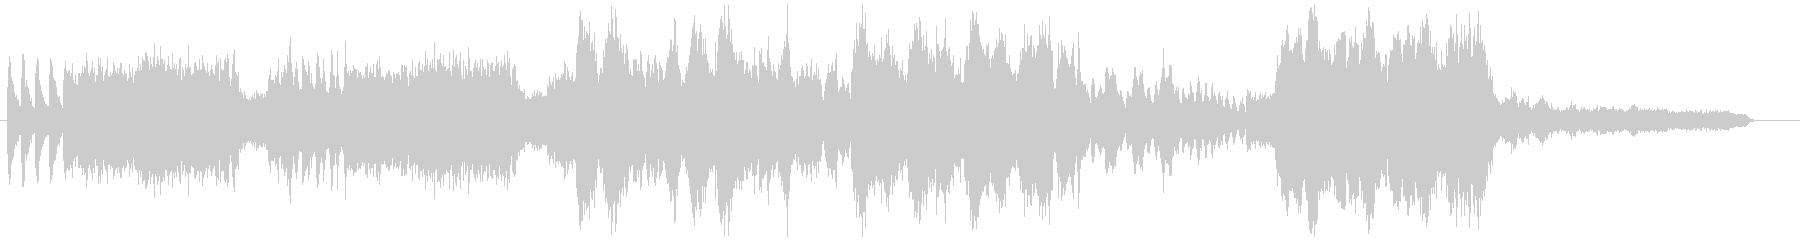 Verdi / Requiem / Dies irae's unreproduced waveform